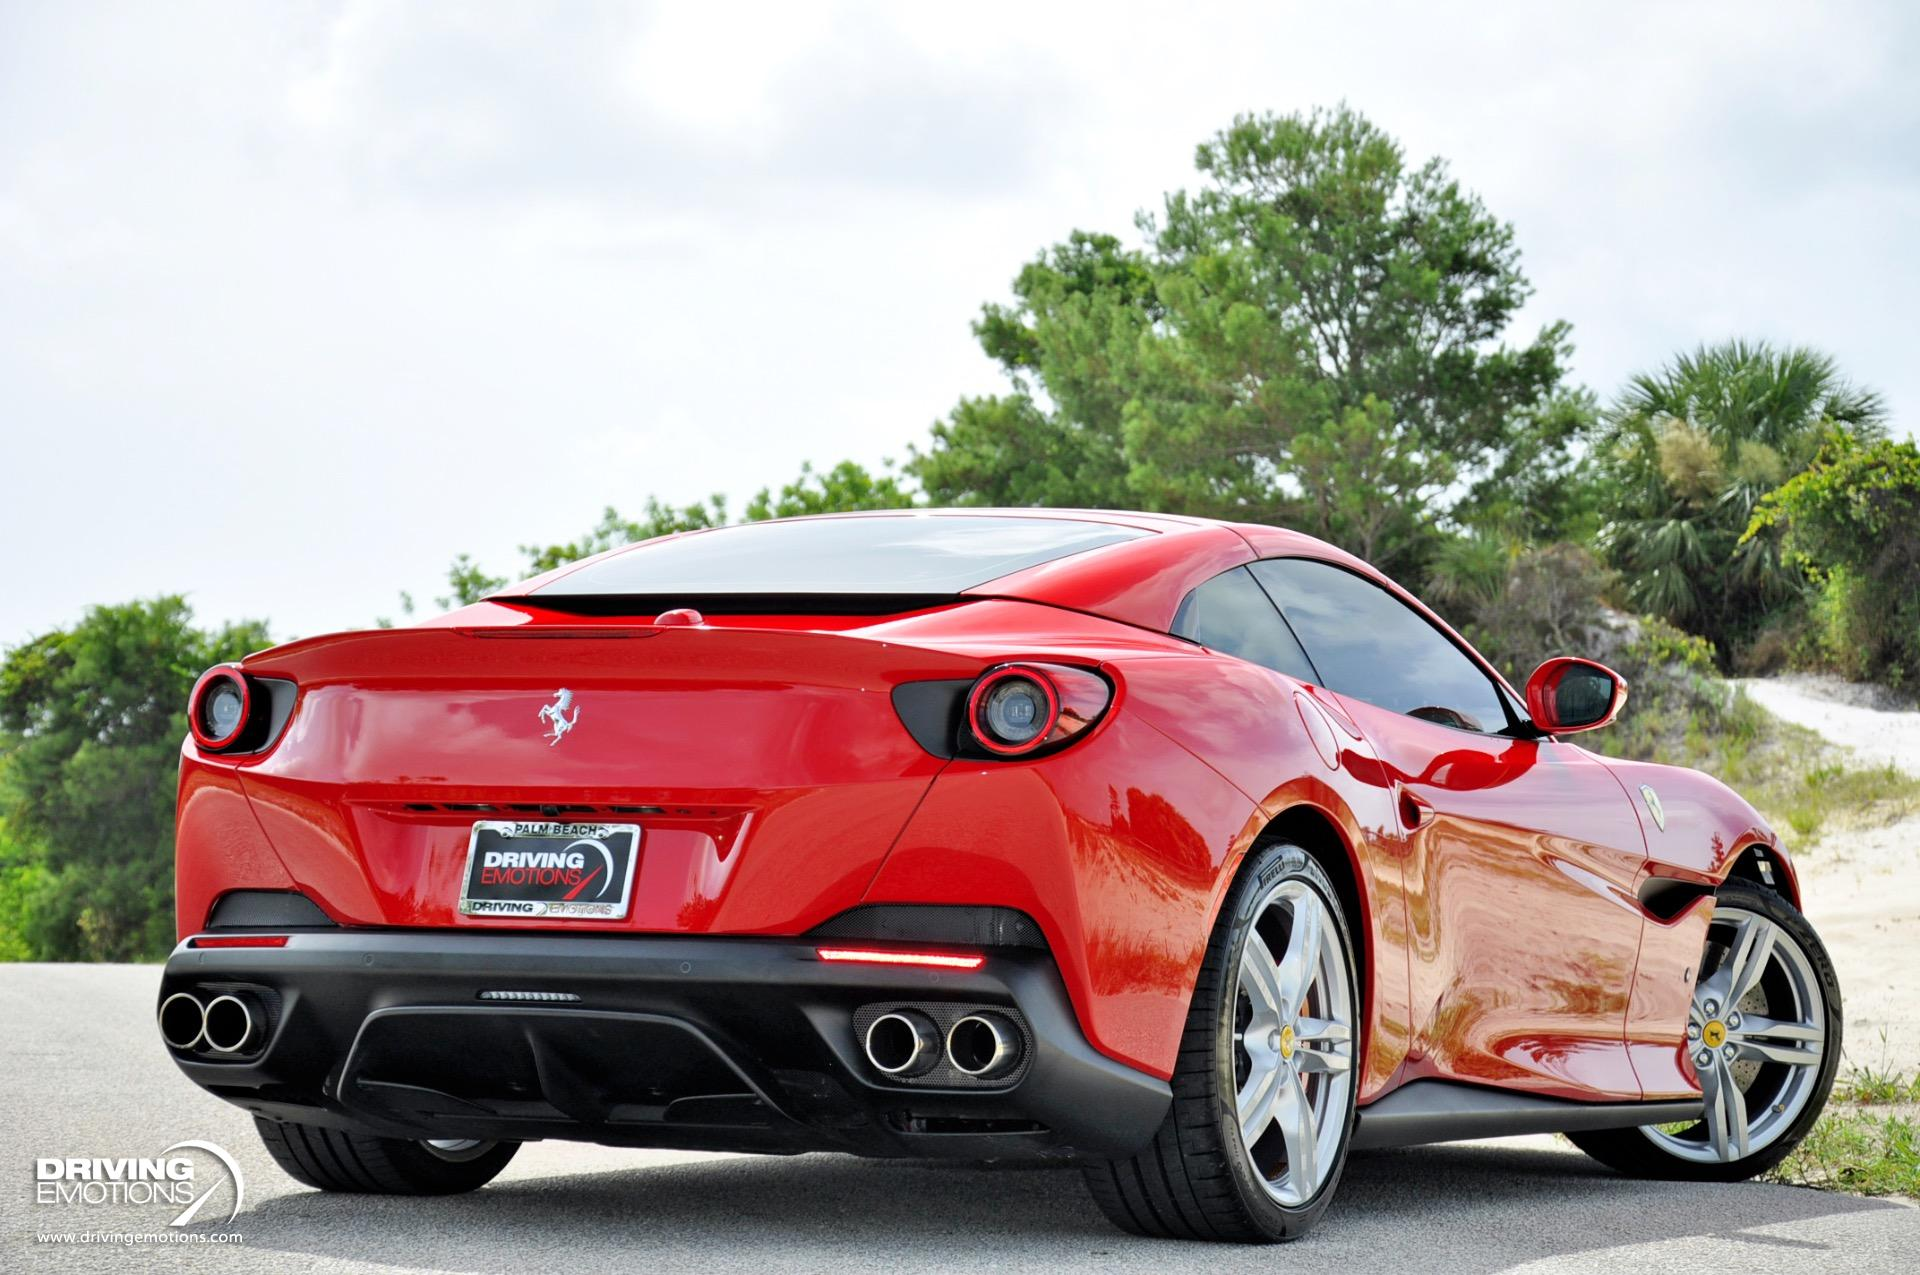 Used 2019 Ferrari Portofino RED/RED!! $244K MSRP!! | Lake Park, FL